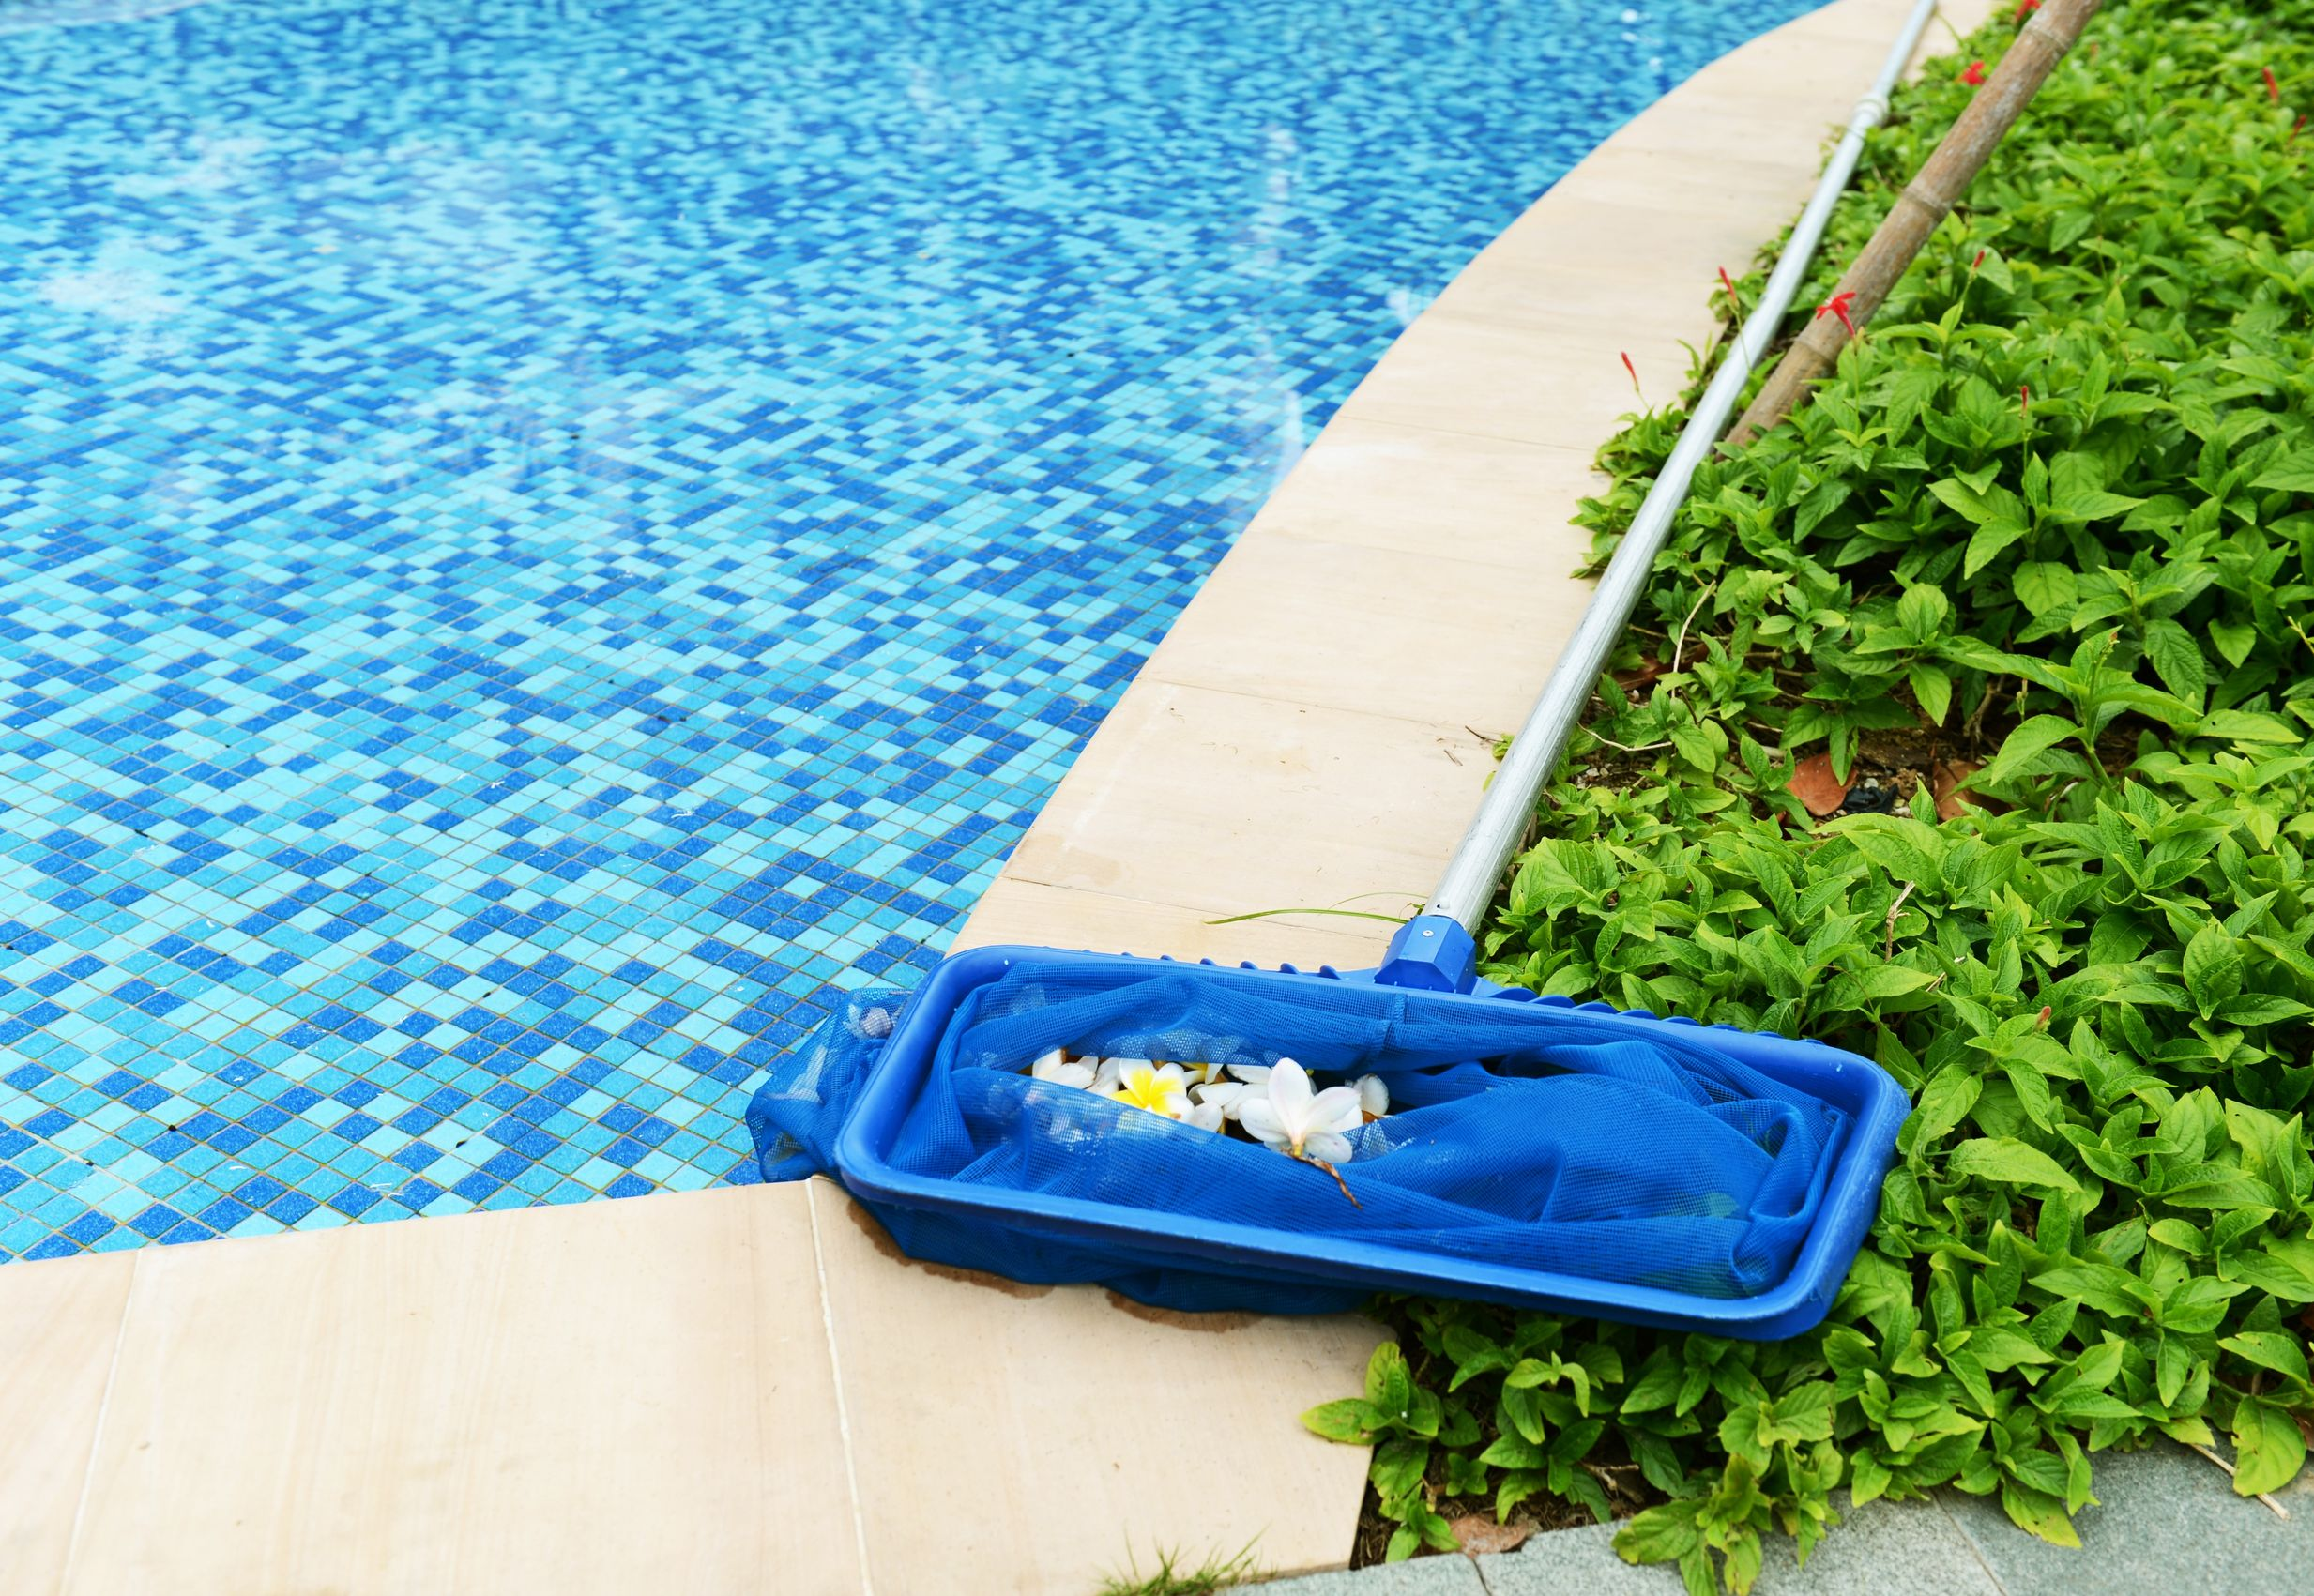 Prepare For Your Pool Party With Preventative Maintenance Crystal Blue Pool Services